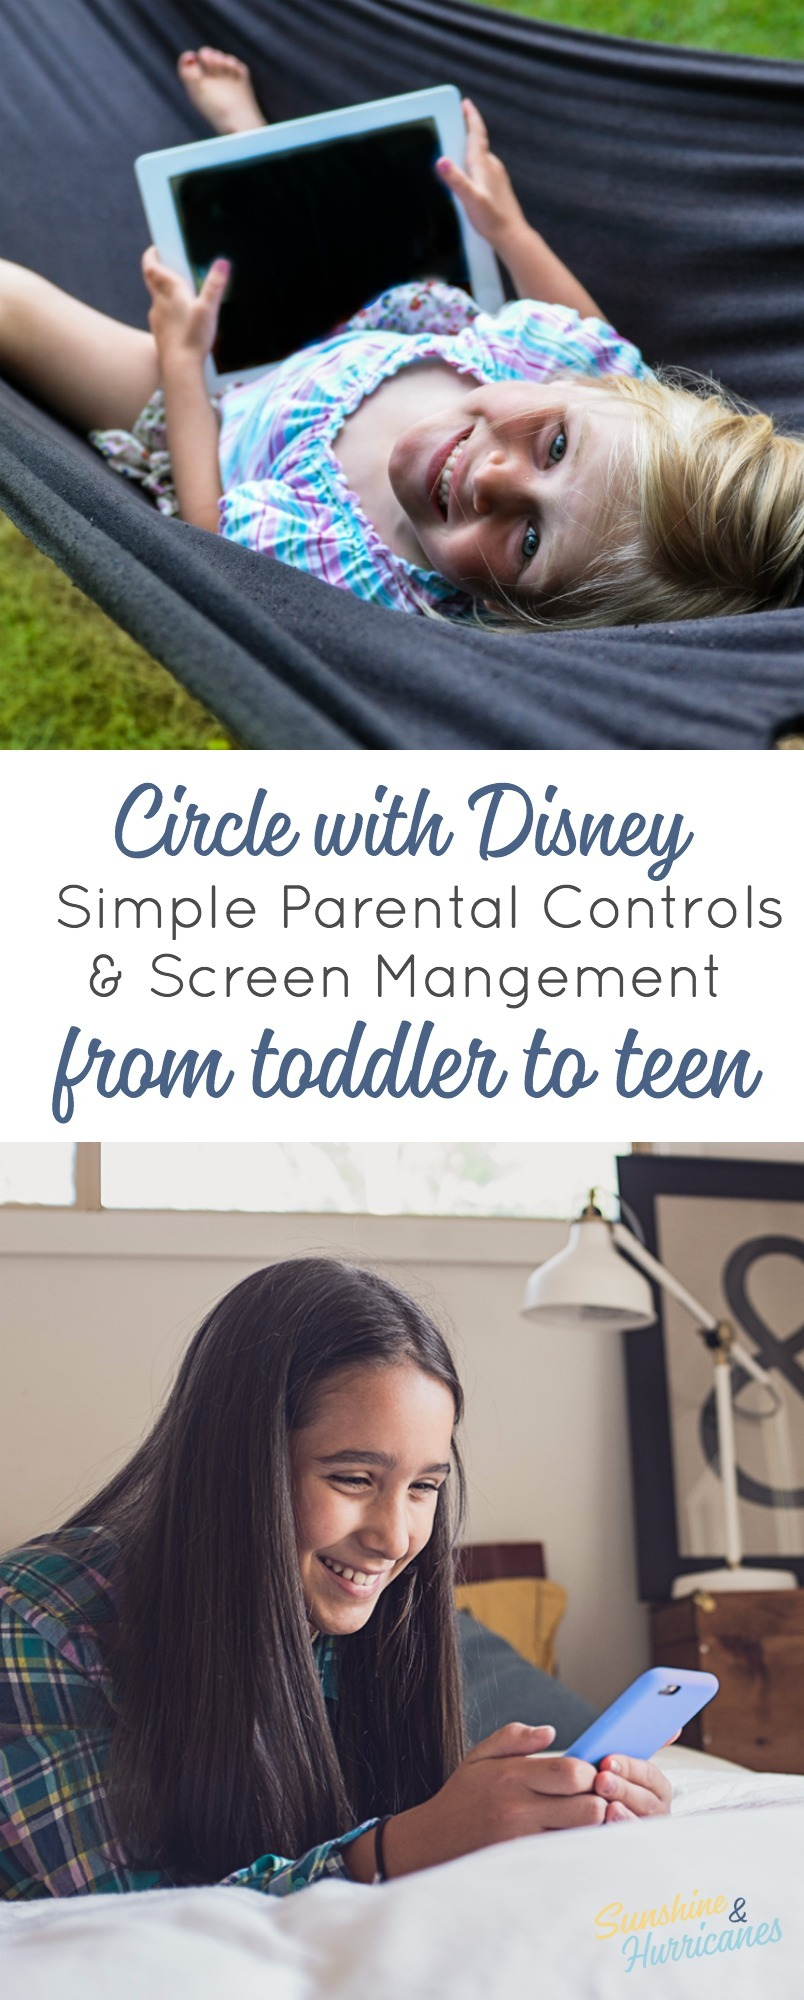 Circle With Disney provides a simple solution for parents trying to manage today's complicated technologies. It helps keep kids, tweens and teens safe online with parental controls that make sense.